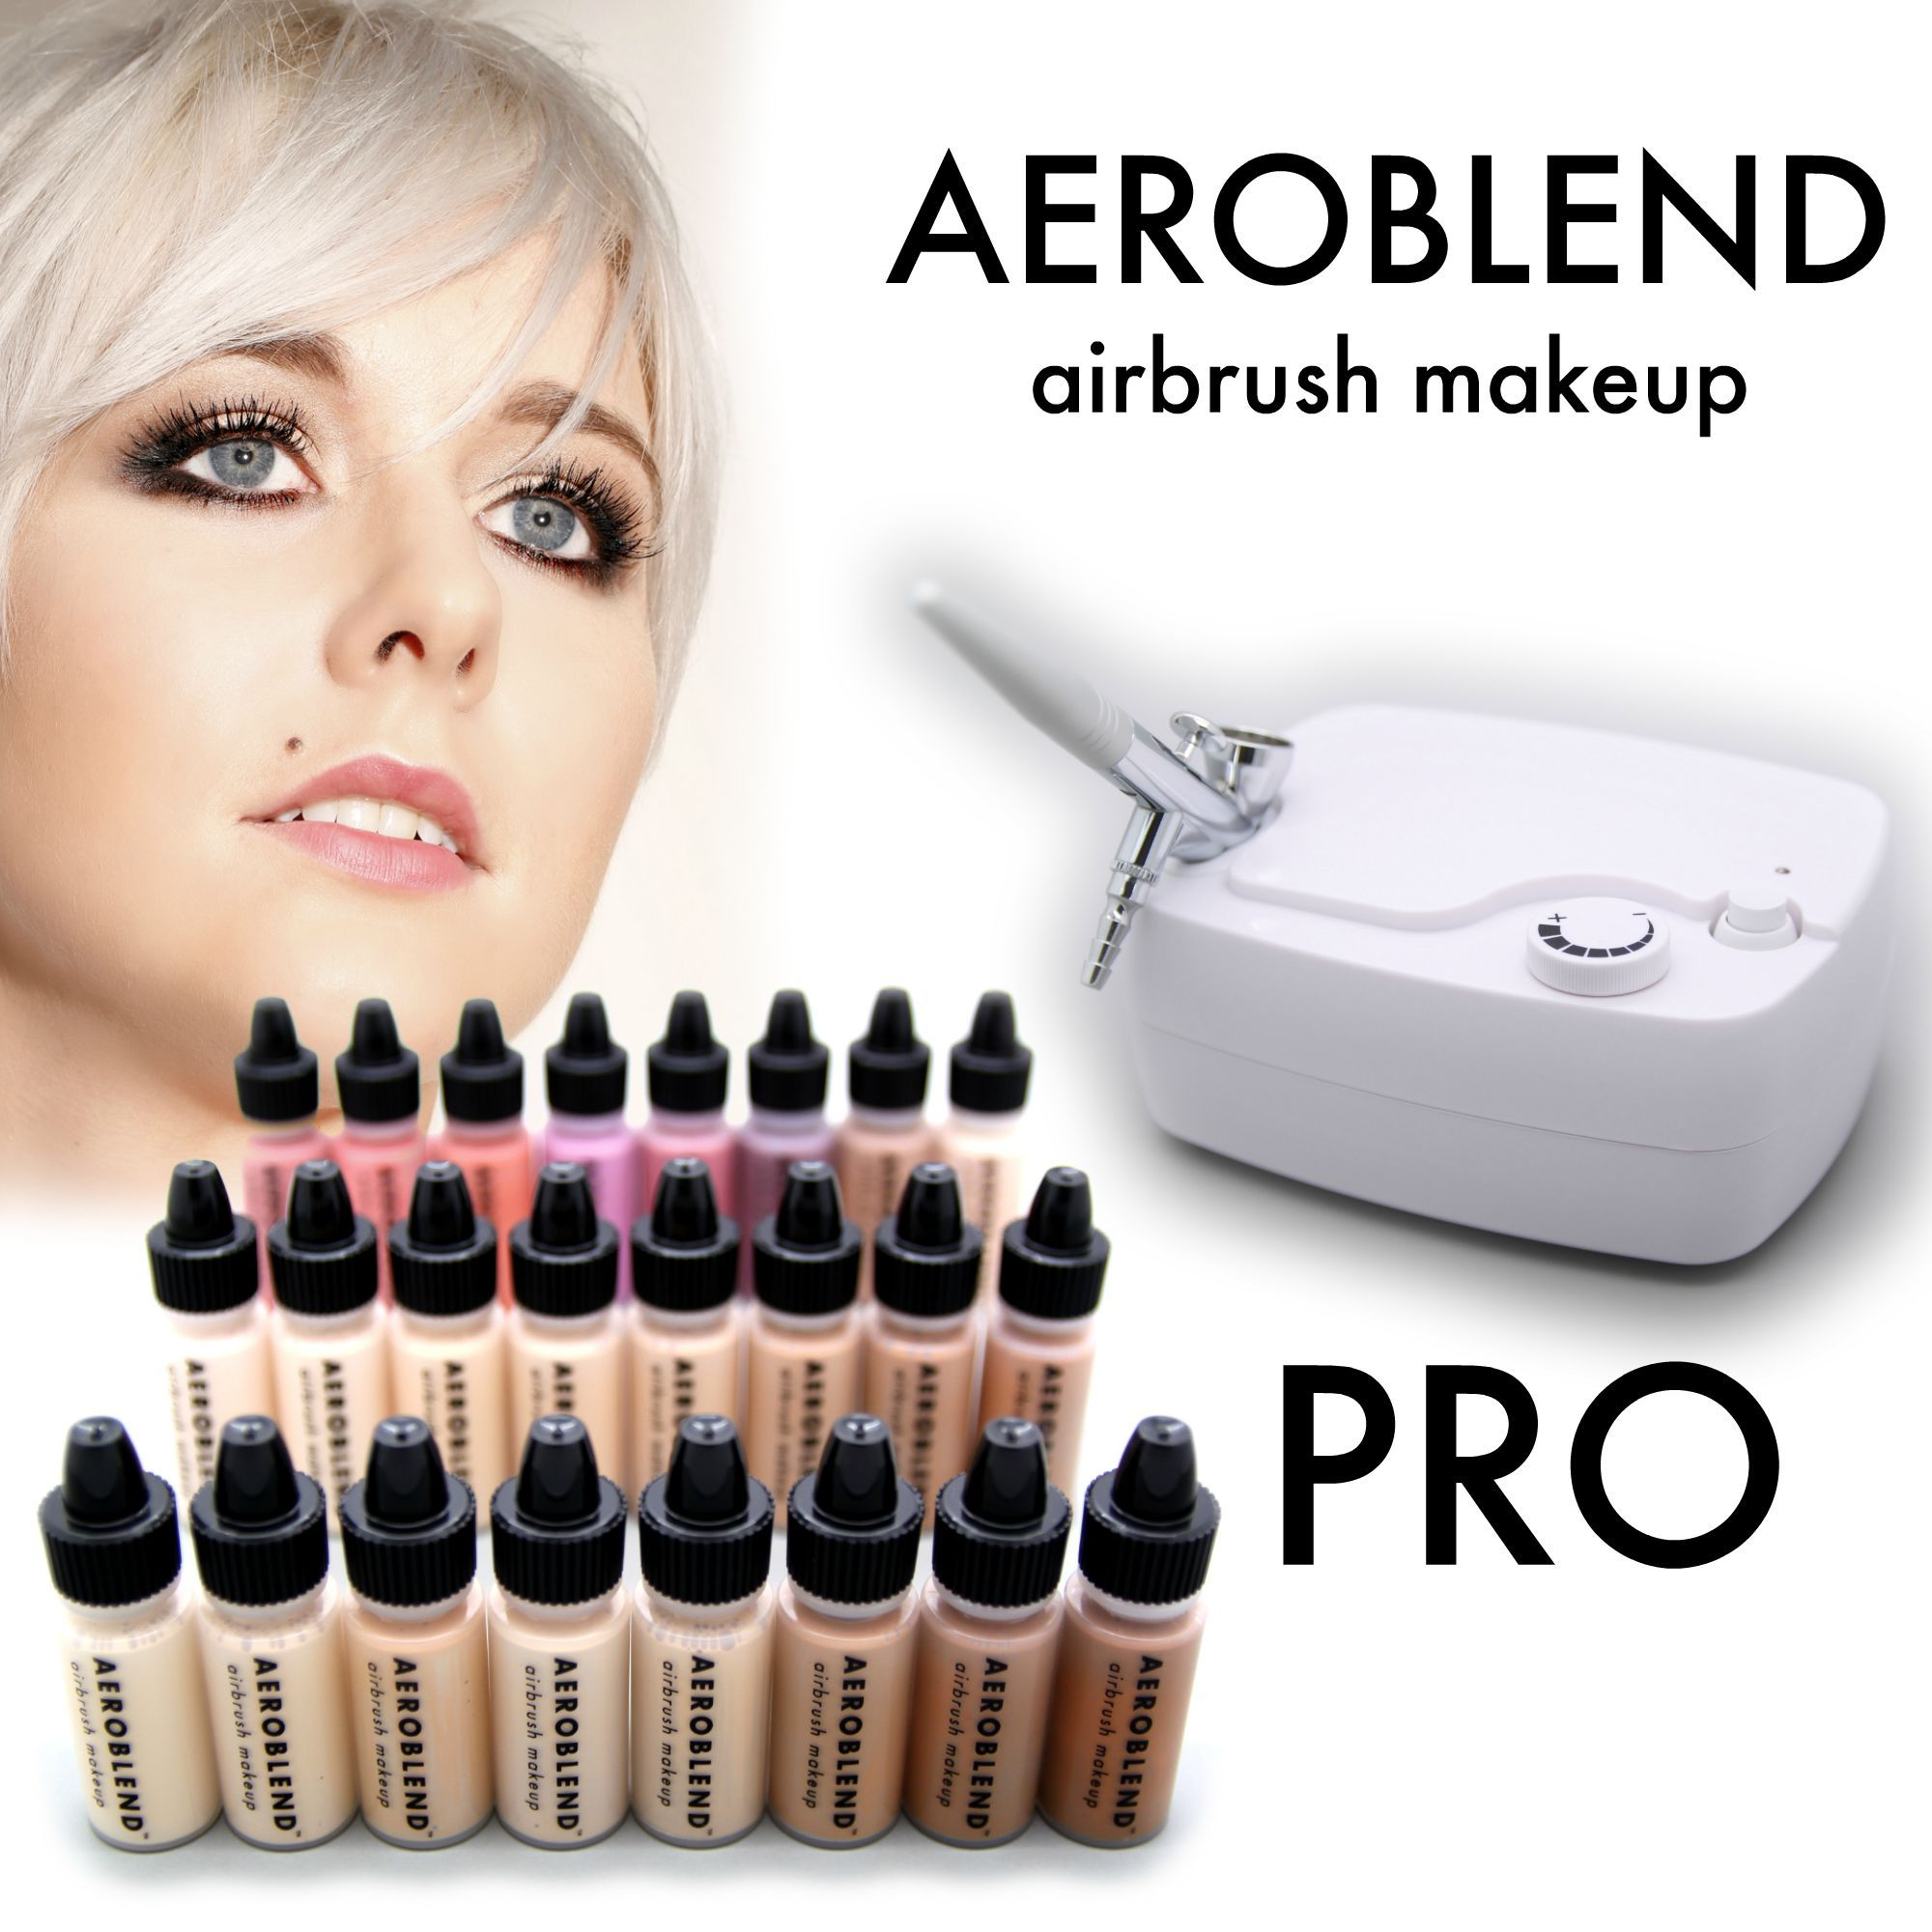 Have you tried Aeroblend yet? The finish and colors are